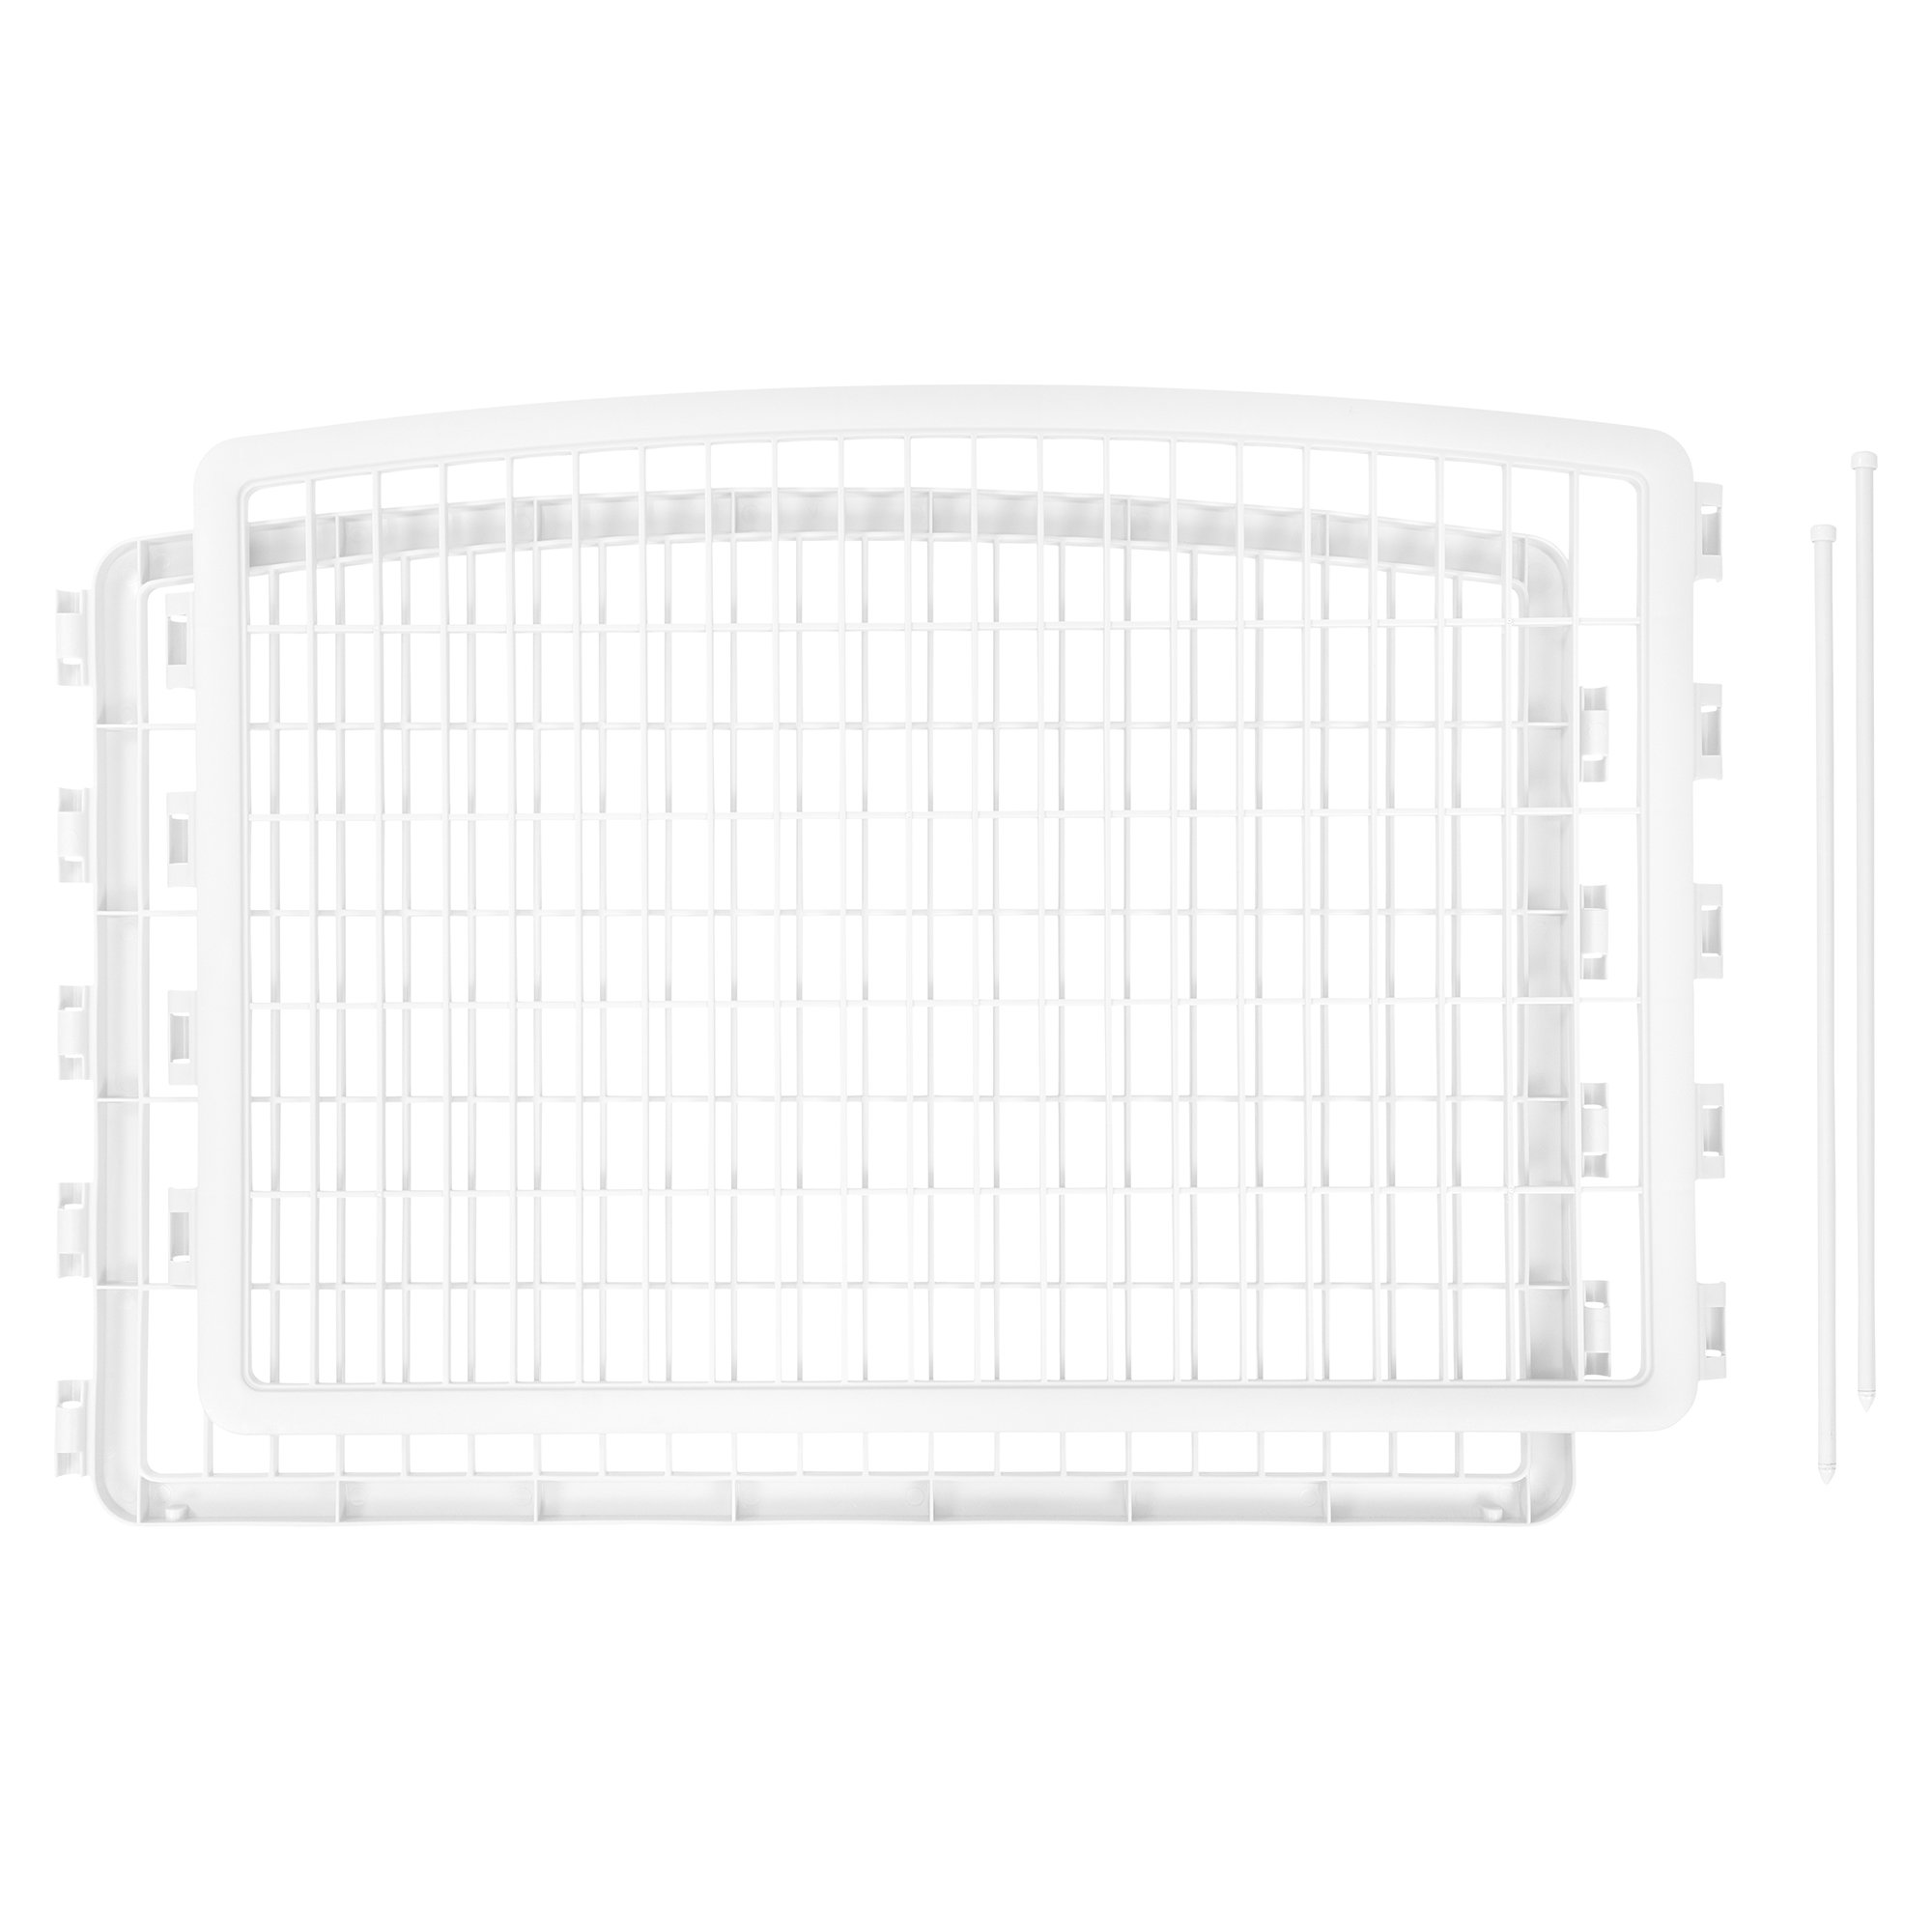 Iris White Two Panel Add On for Four Panel Containment and